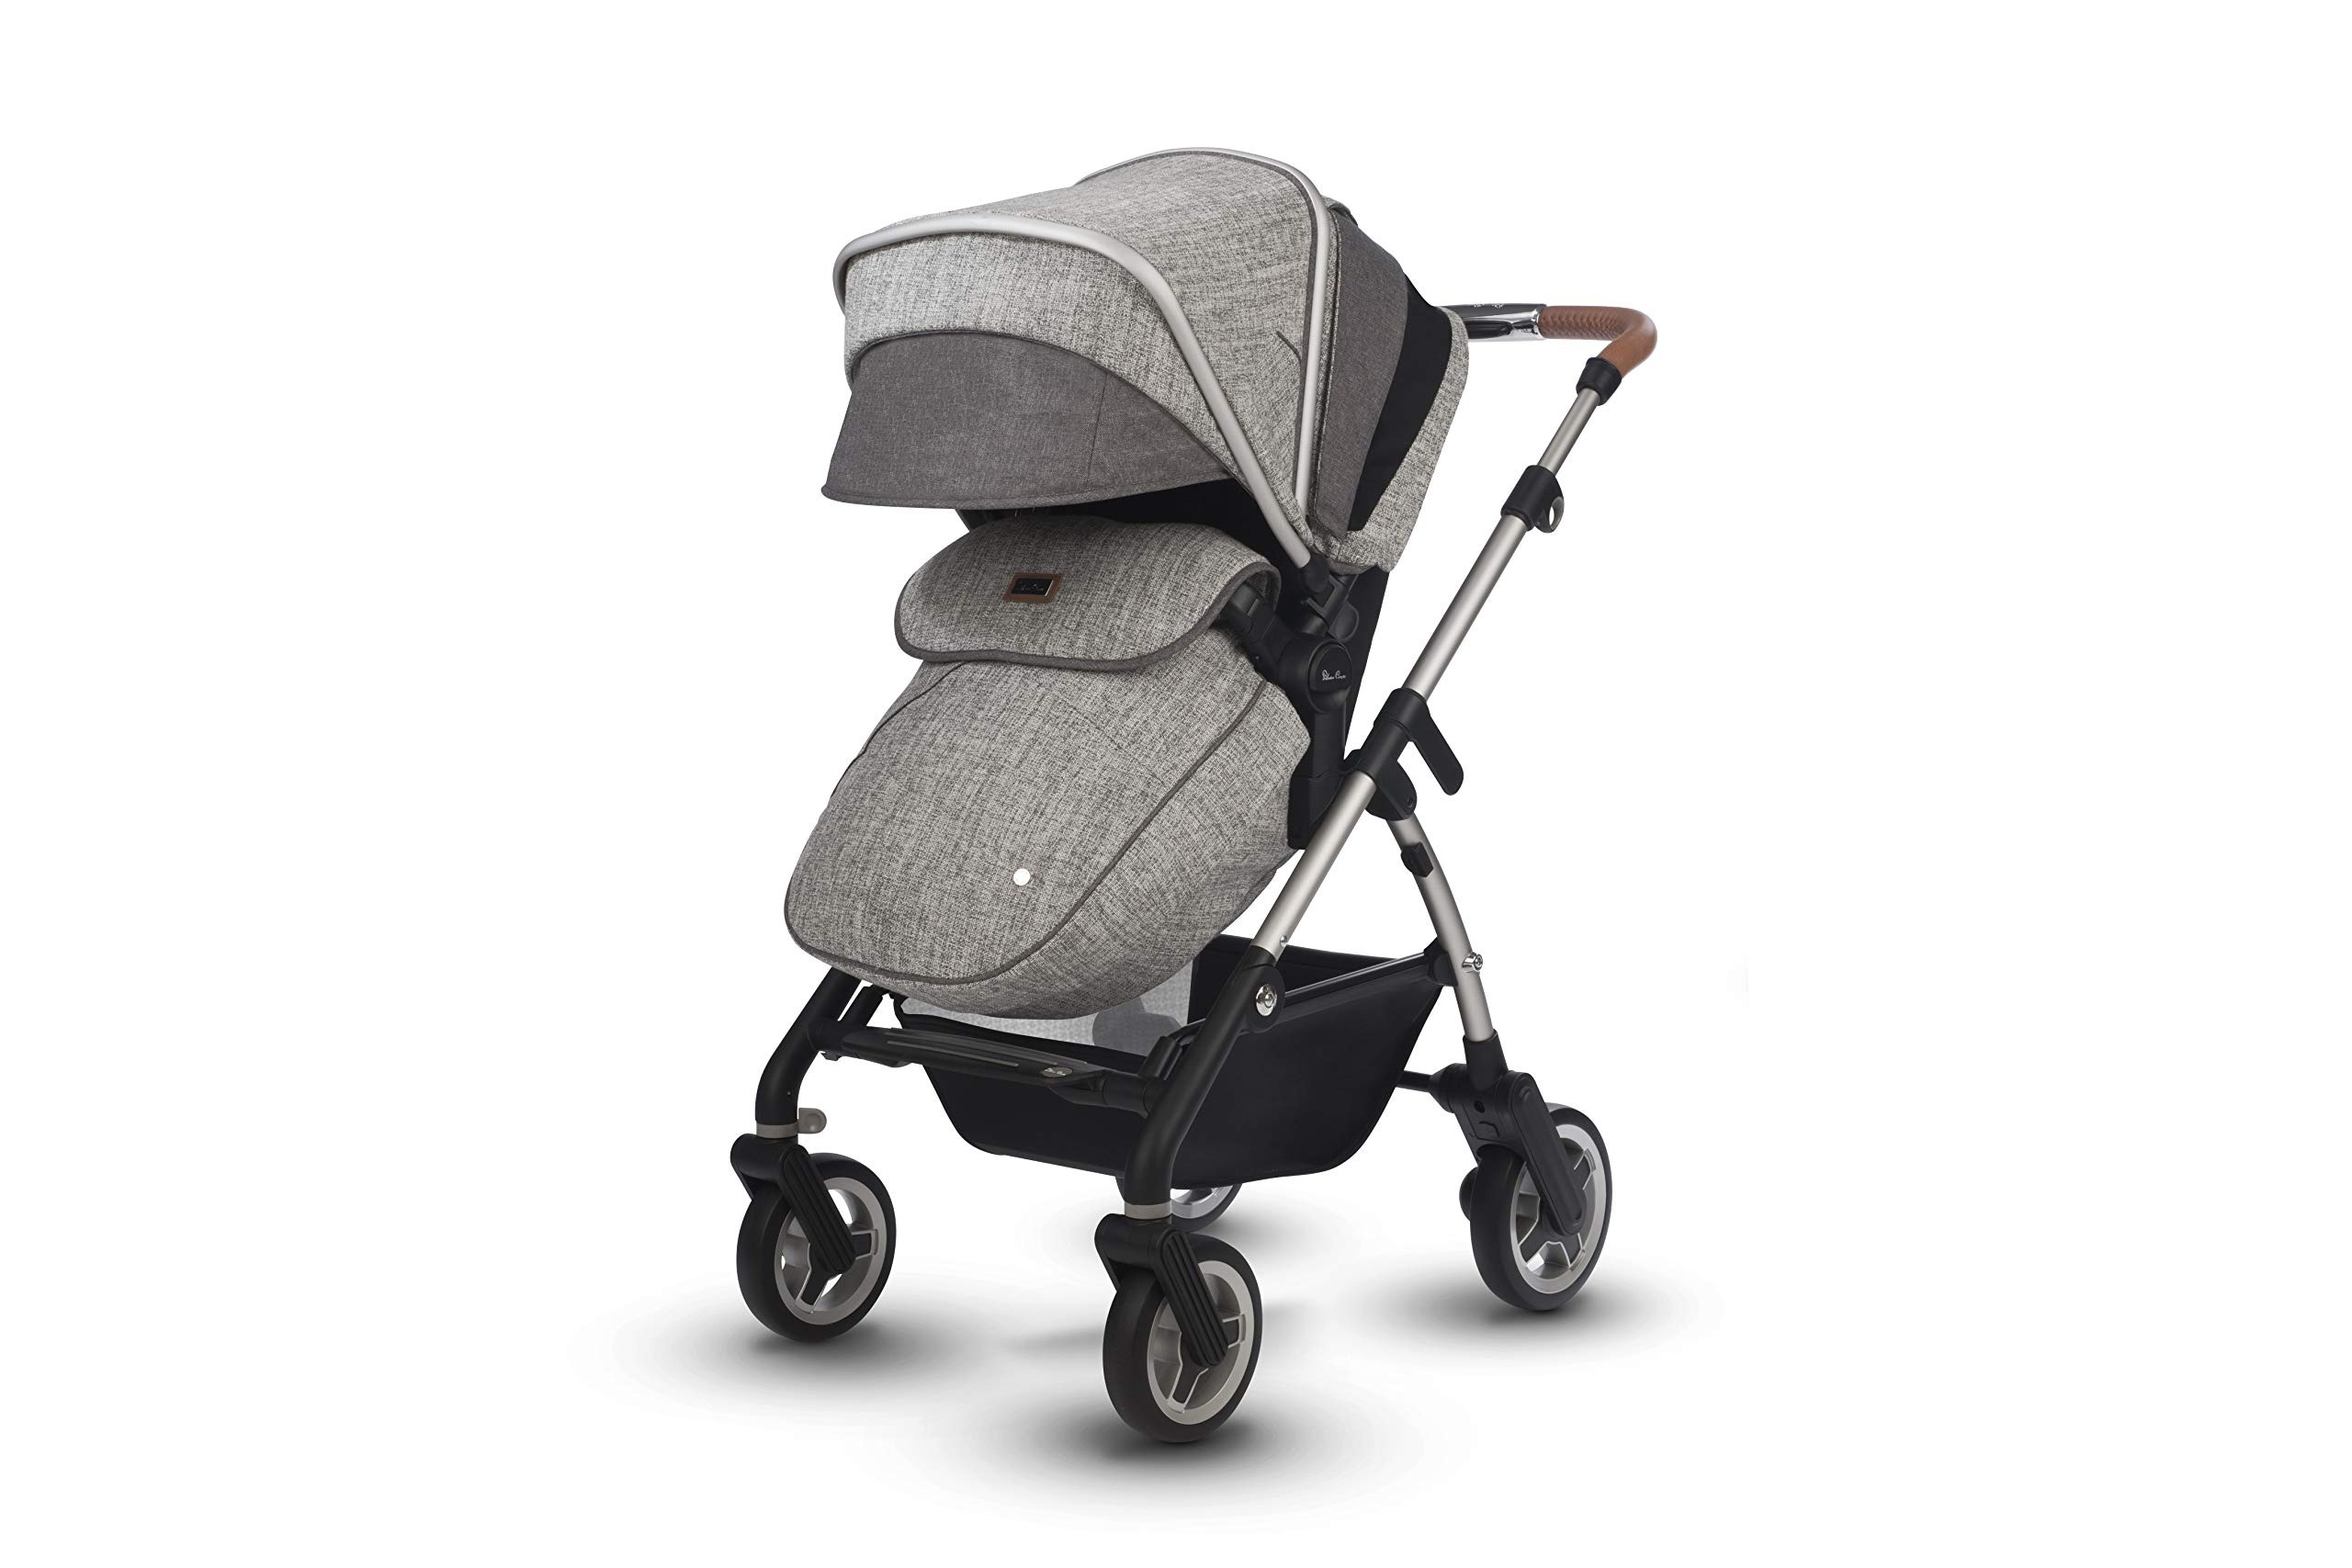 Silver Cross Wayfarer Camden Silver Cross Complete pram system that includes everything you need from birth to toddler Includes a lie-flat carrycot for your new born that is suitable for overnight sleeping Compact, lightweight and convenient, hardwearing and durable 6